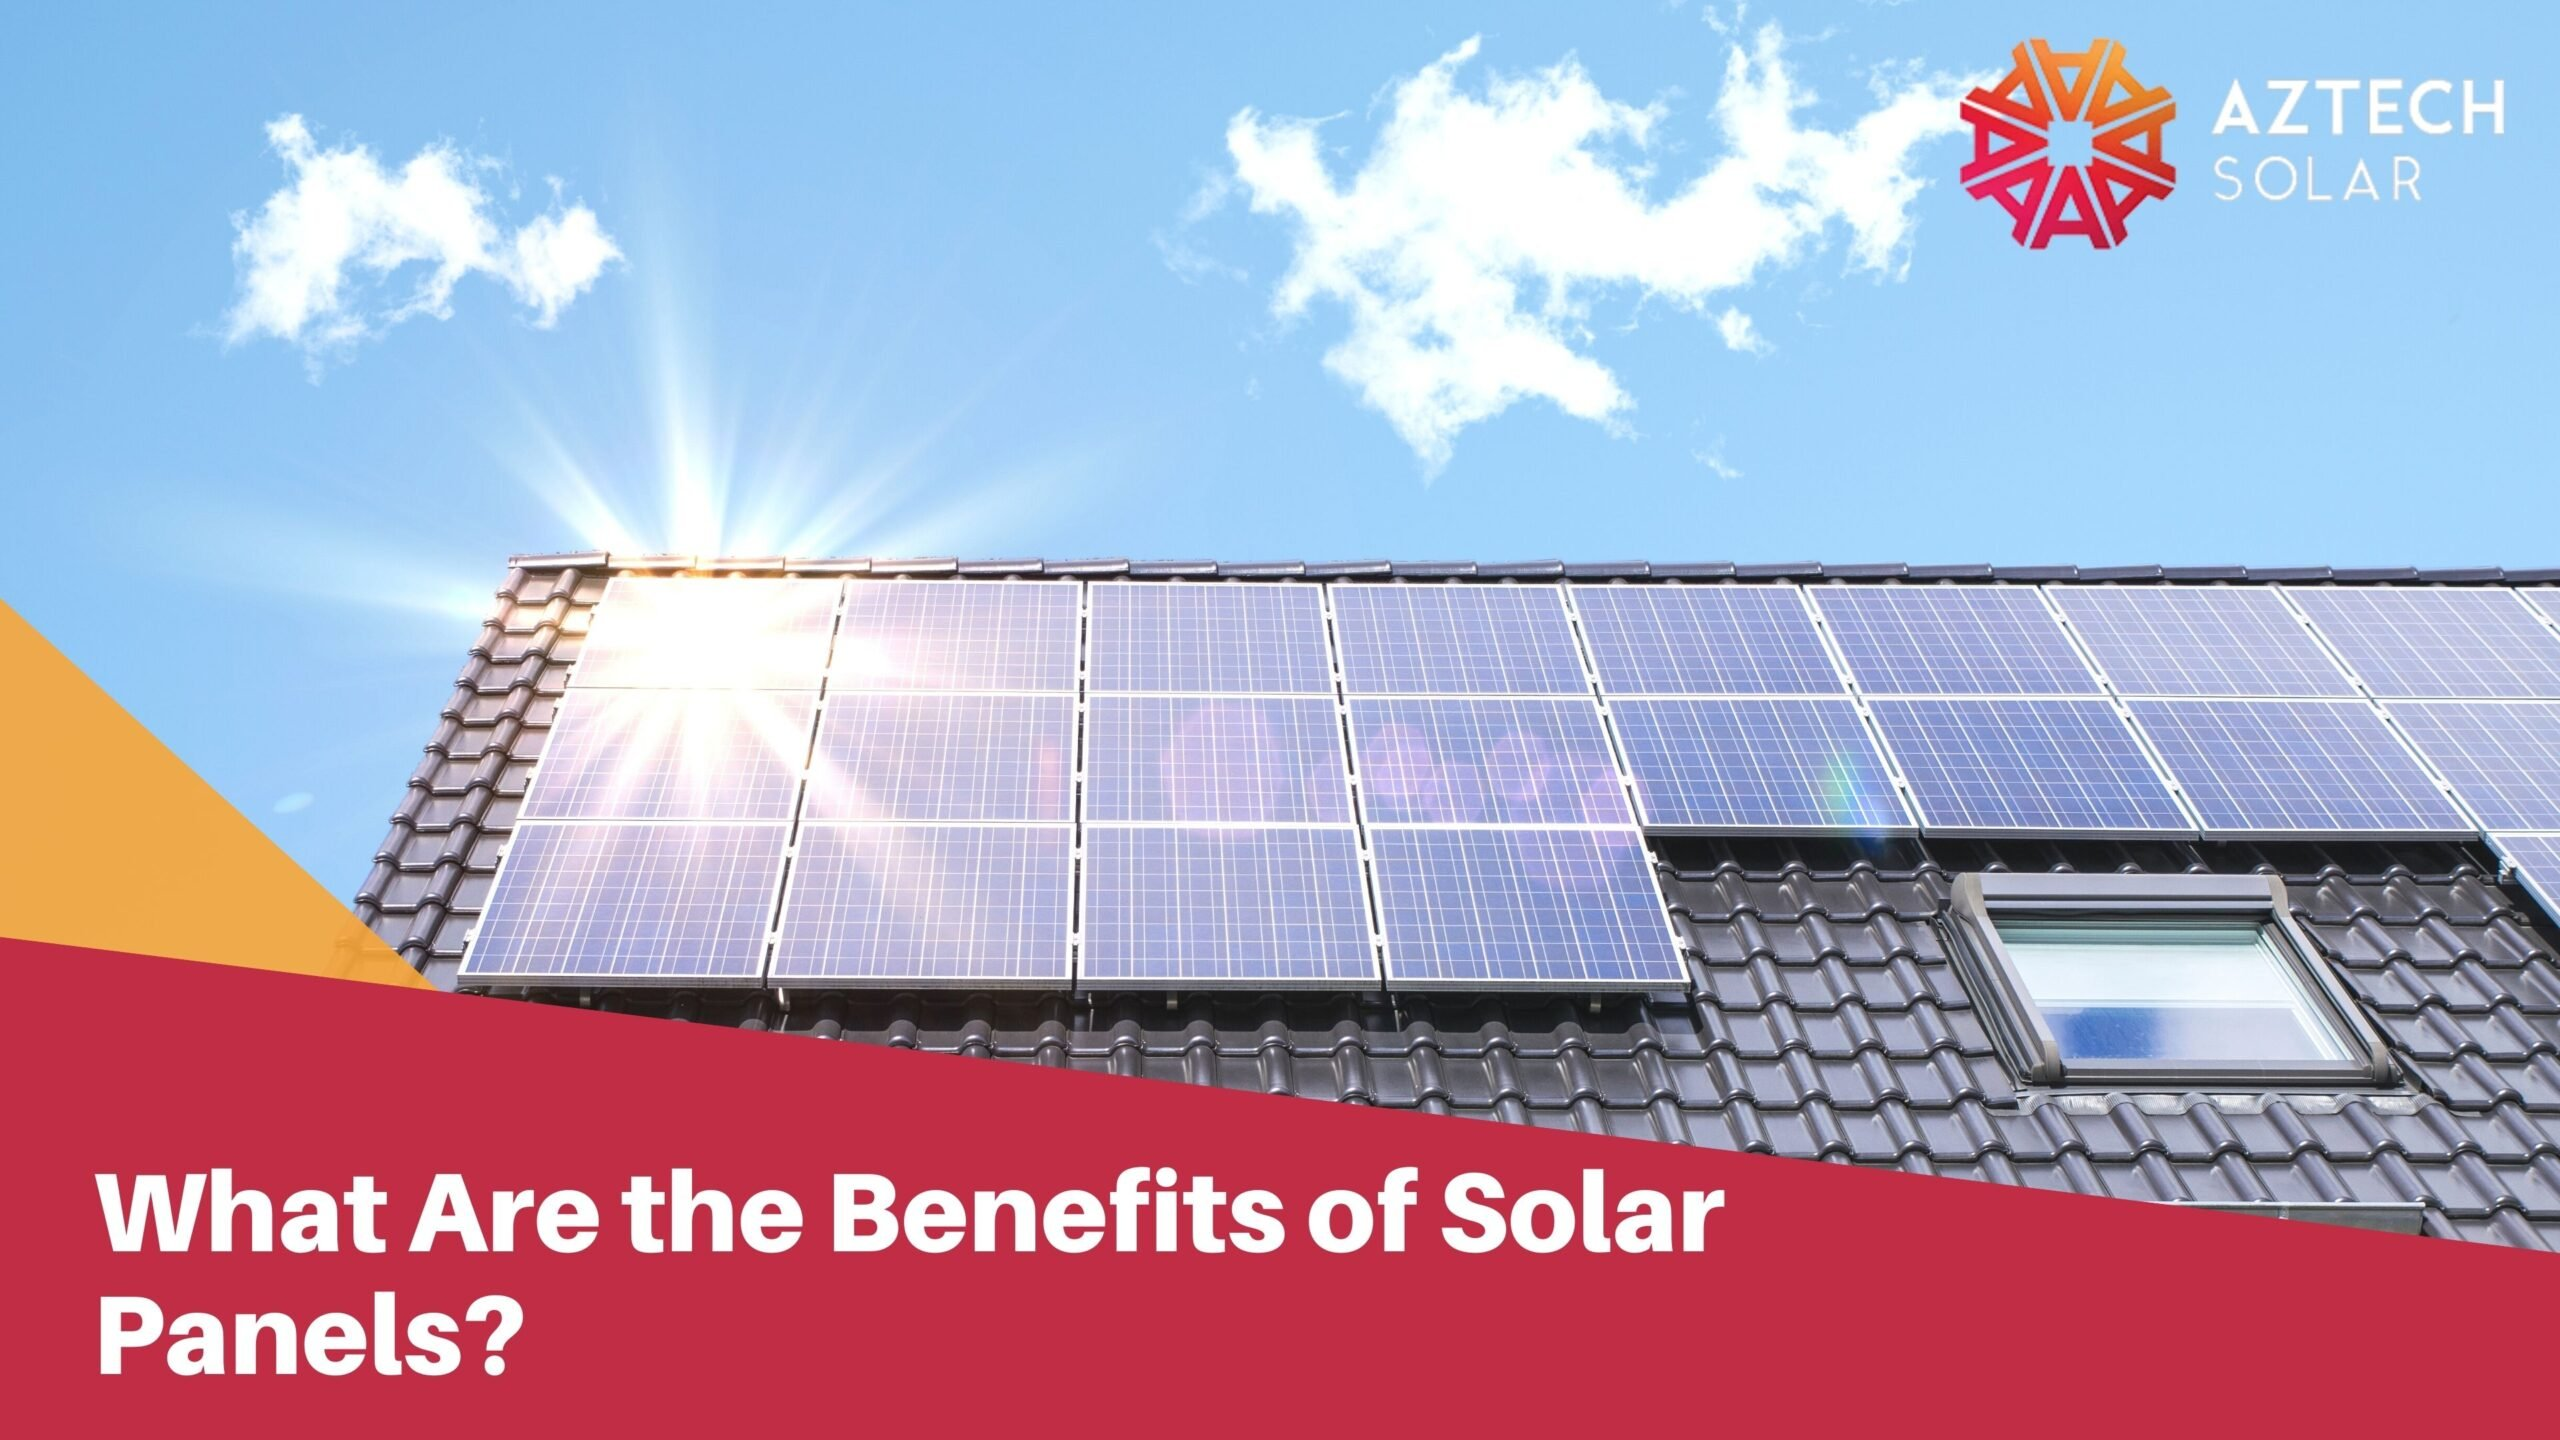 What Are the Benefits of Solar Panels